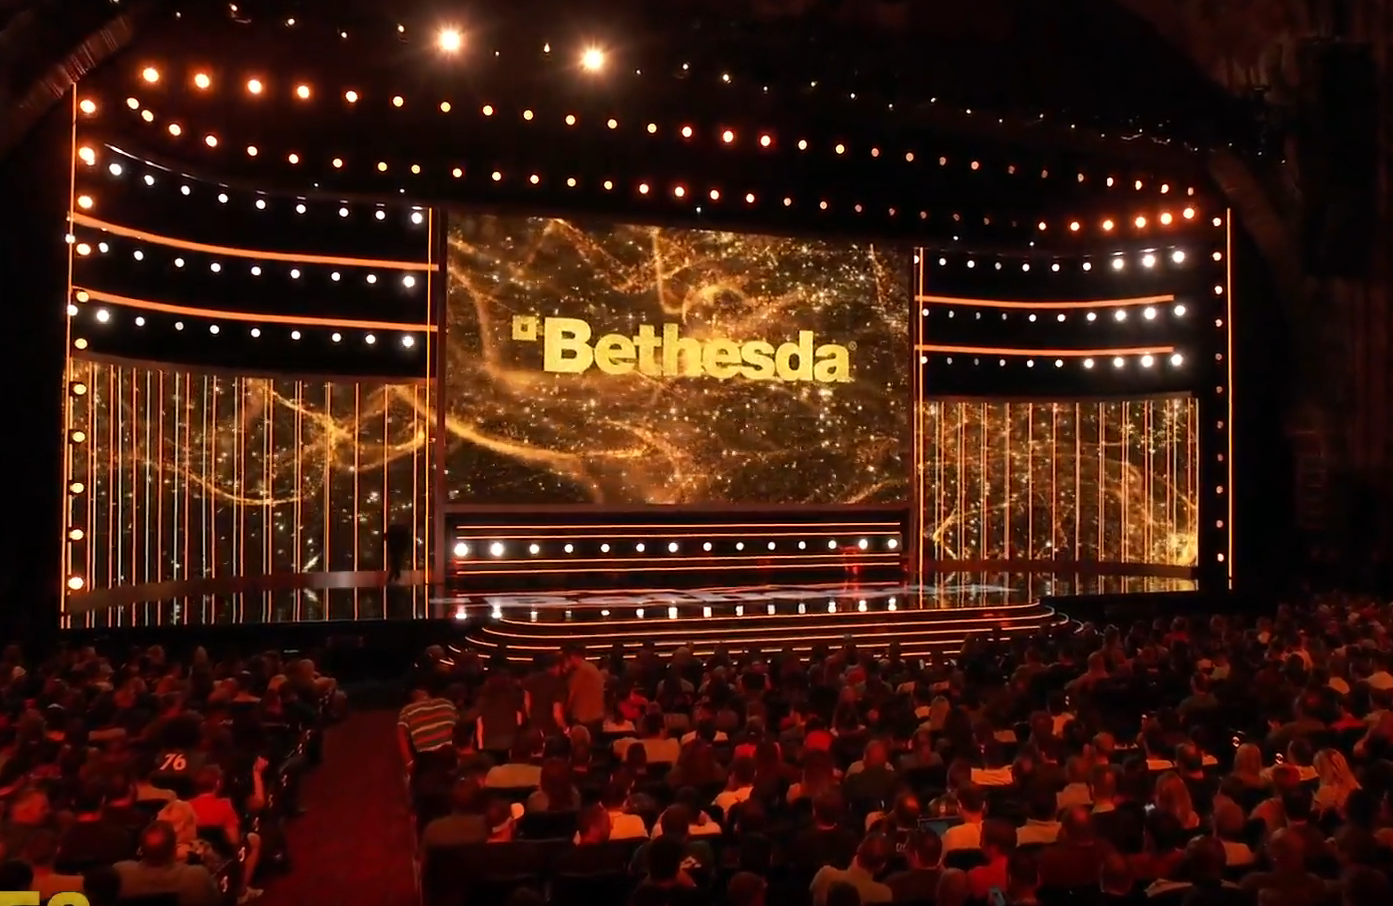 Bethesda accused of faking crowd noise during E3 press